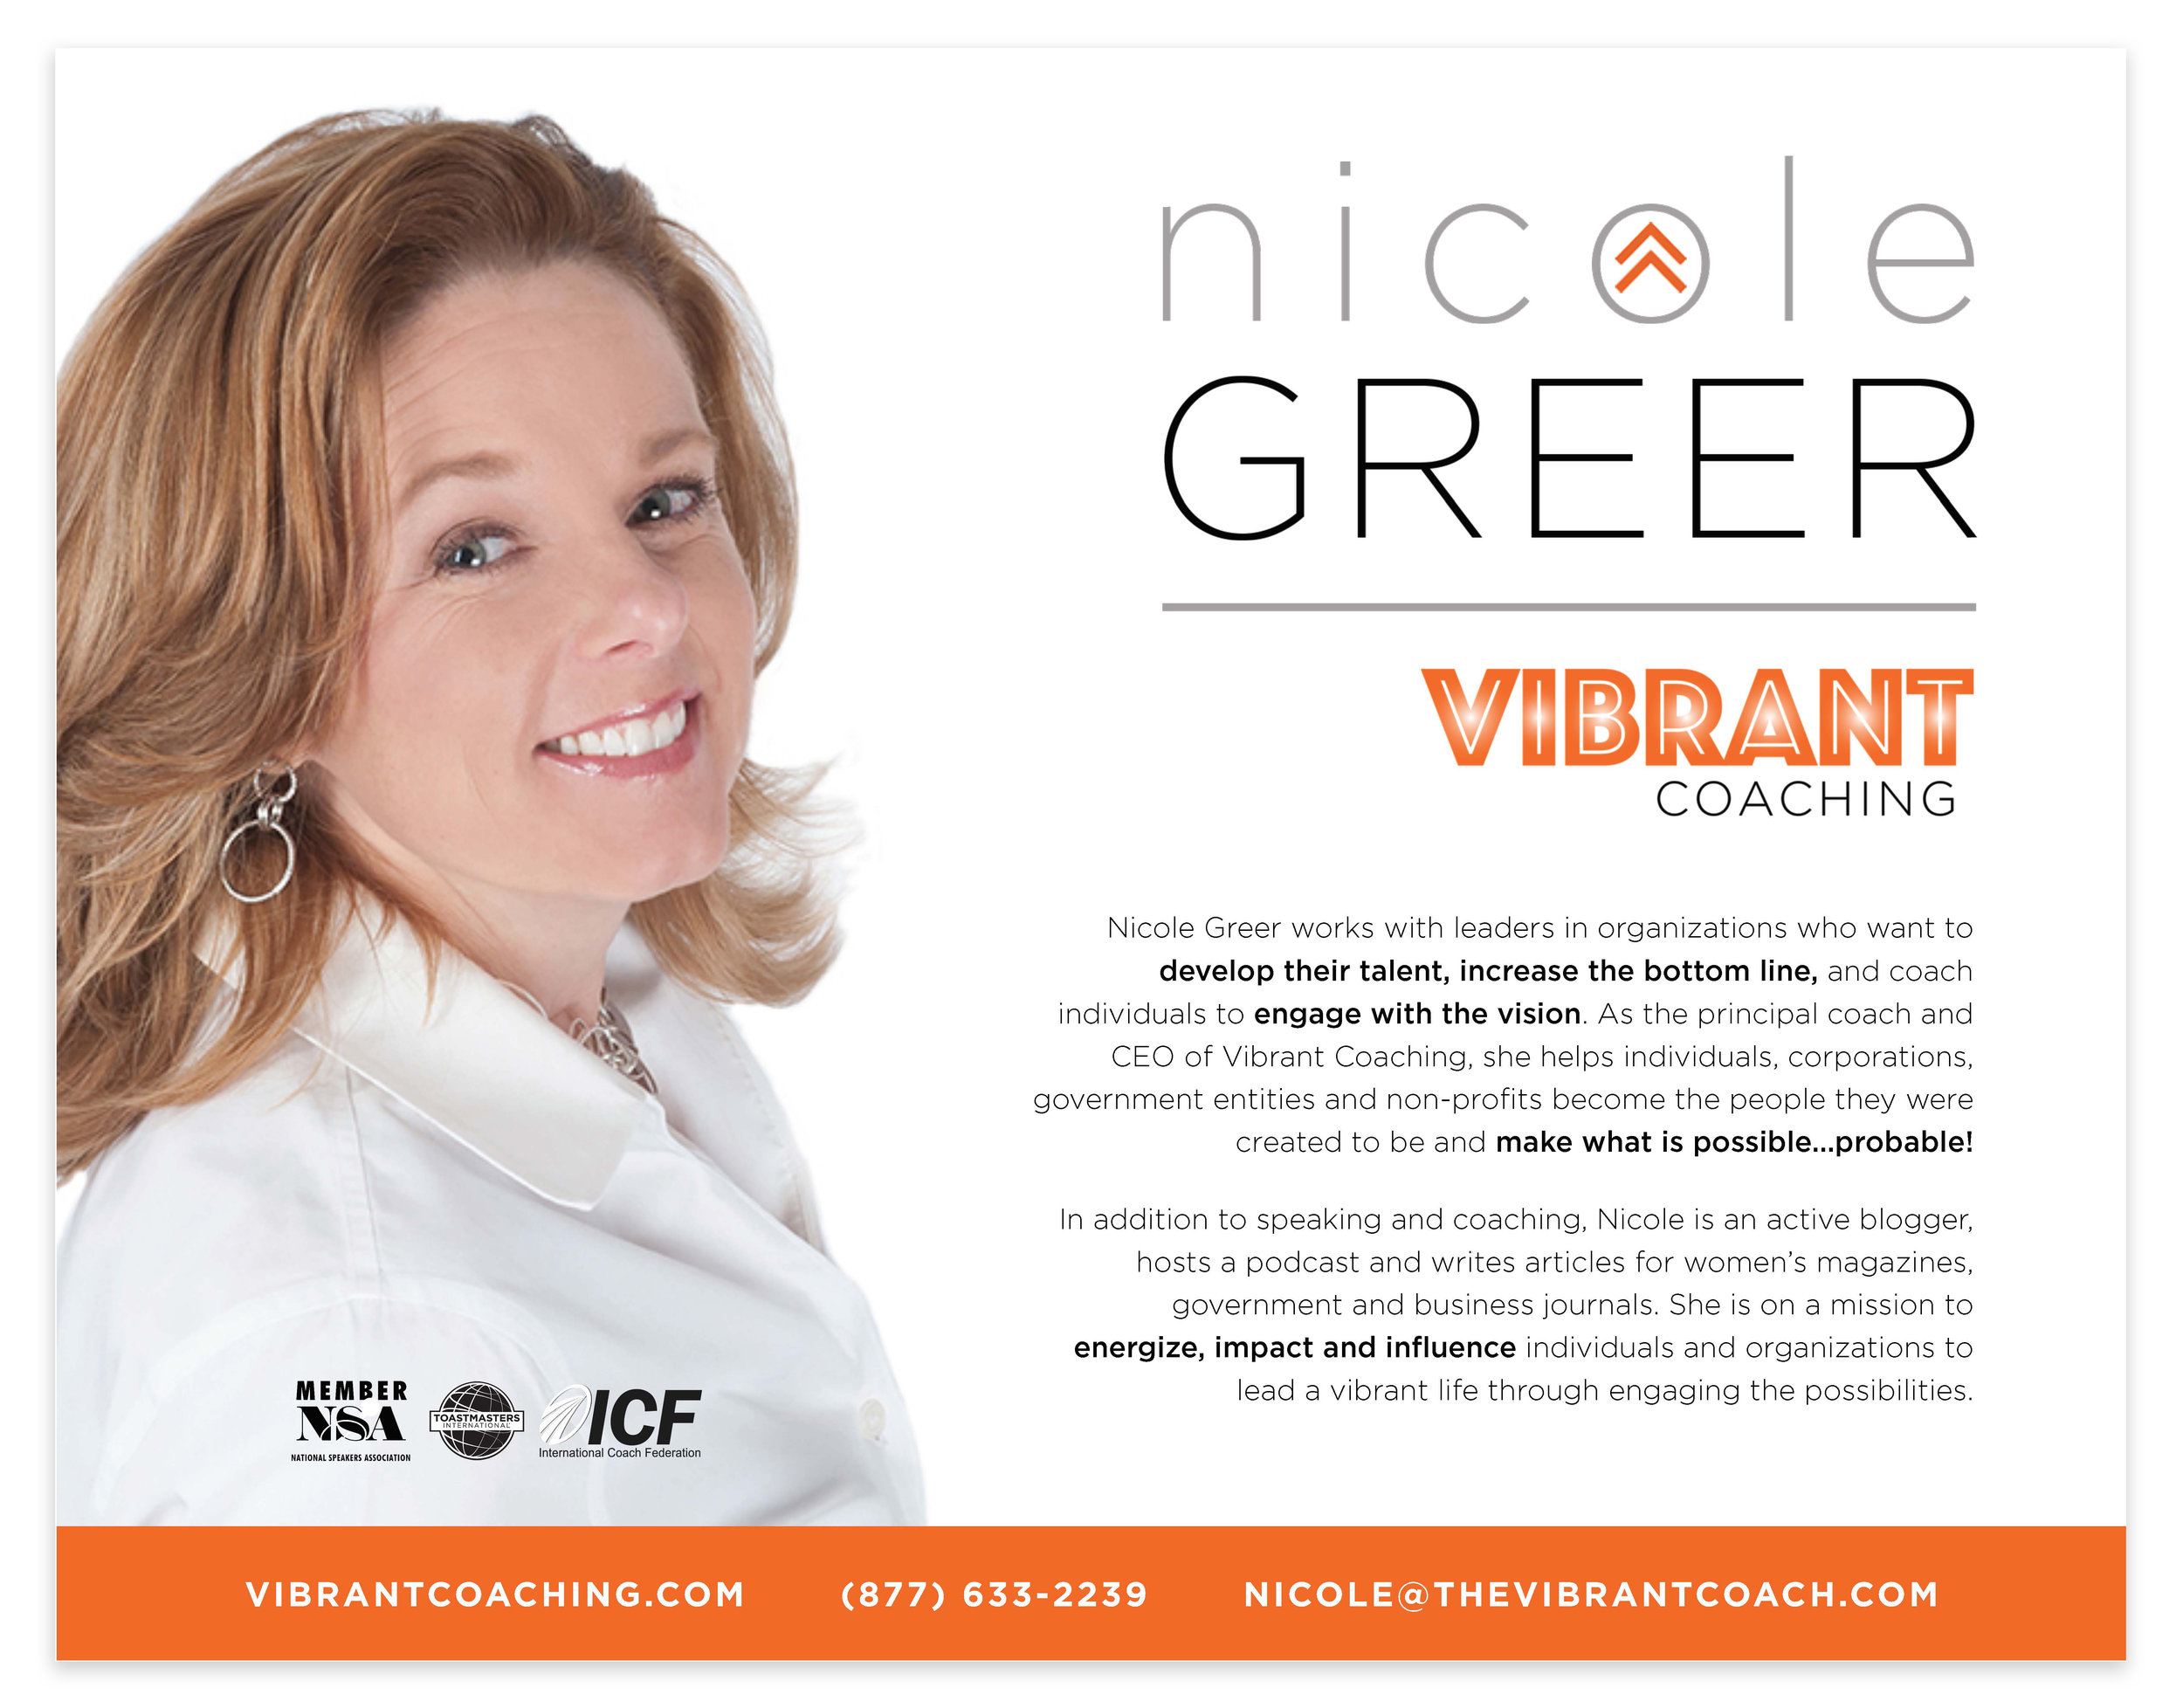 NICOLE'S PROFESSIONAL ONE-SHEET — CLICK BELOW TO DOWNLOAD